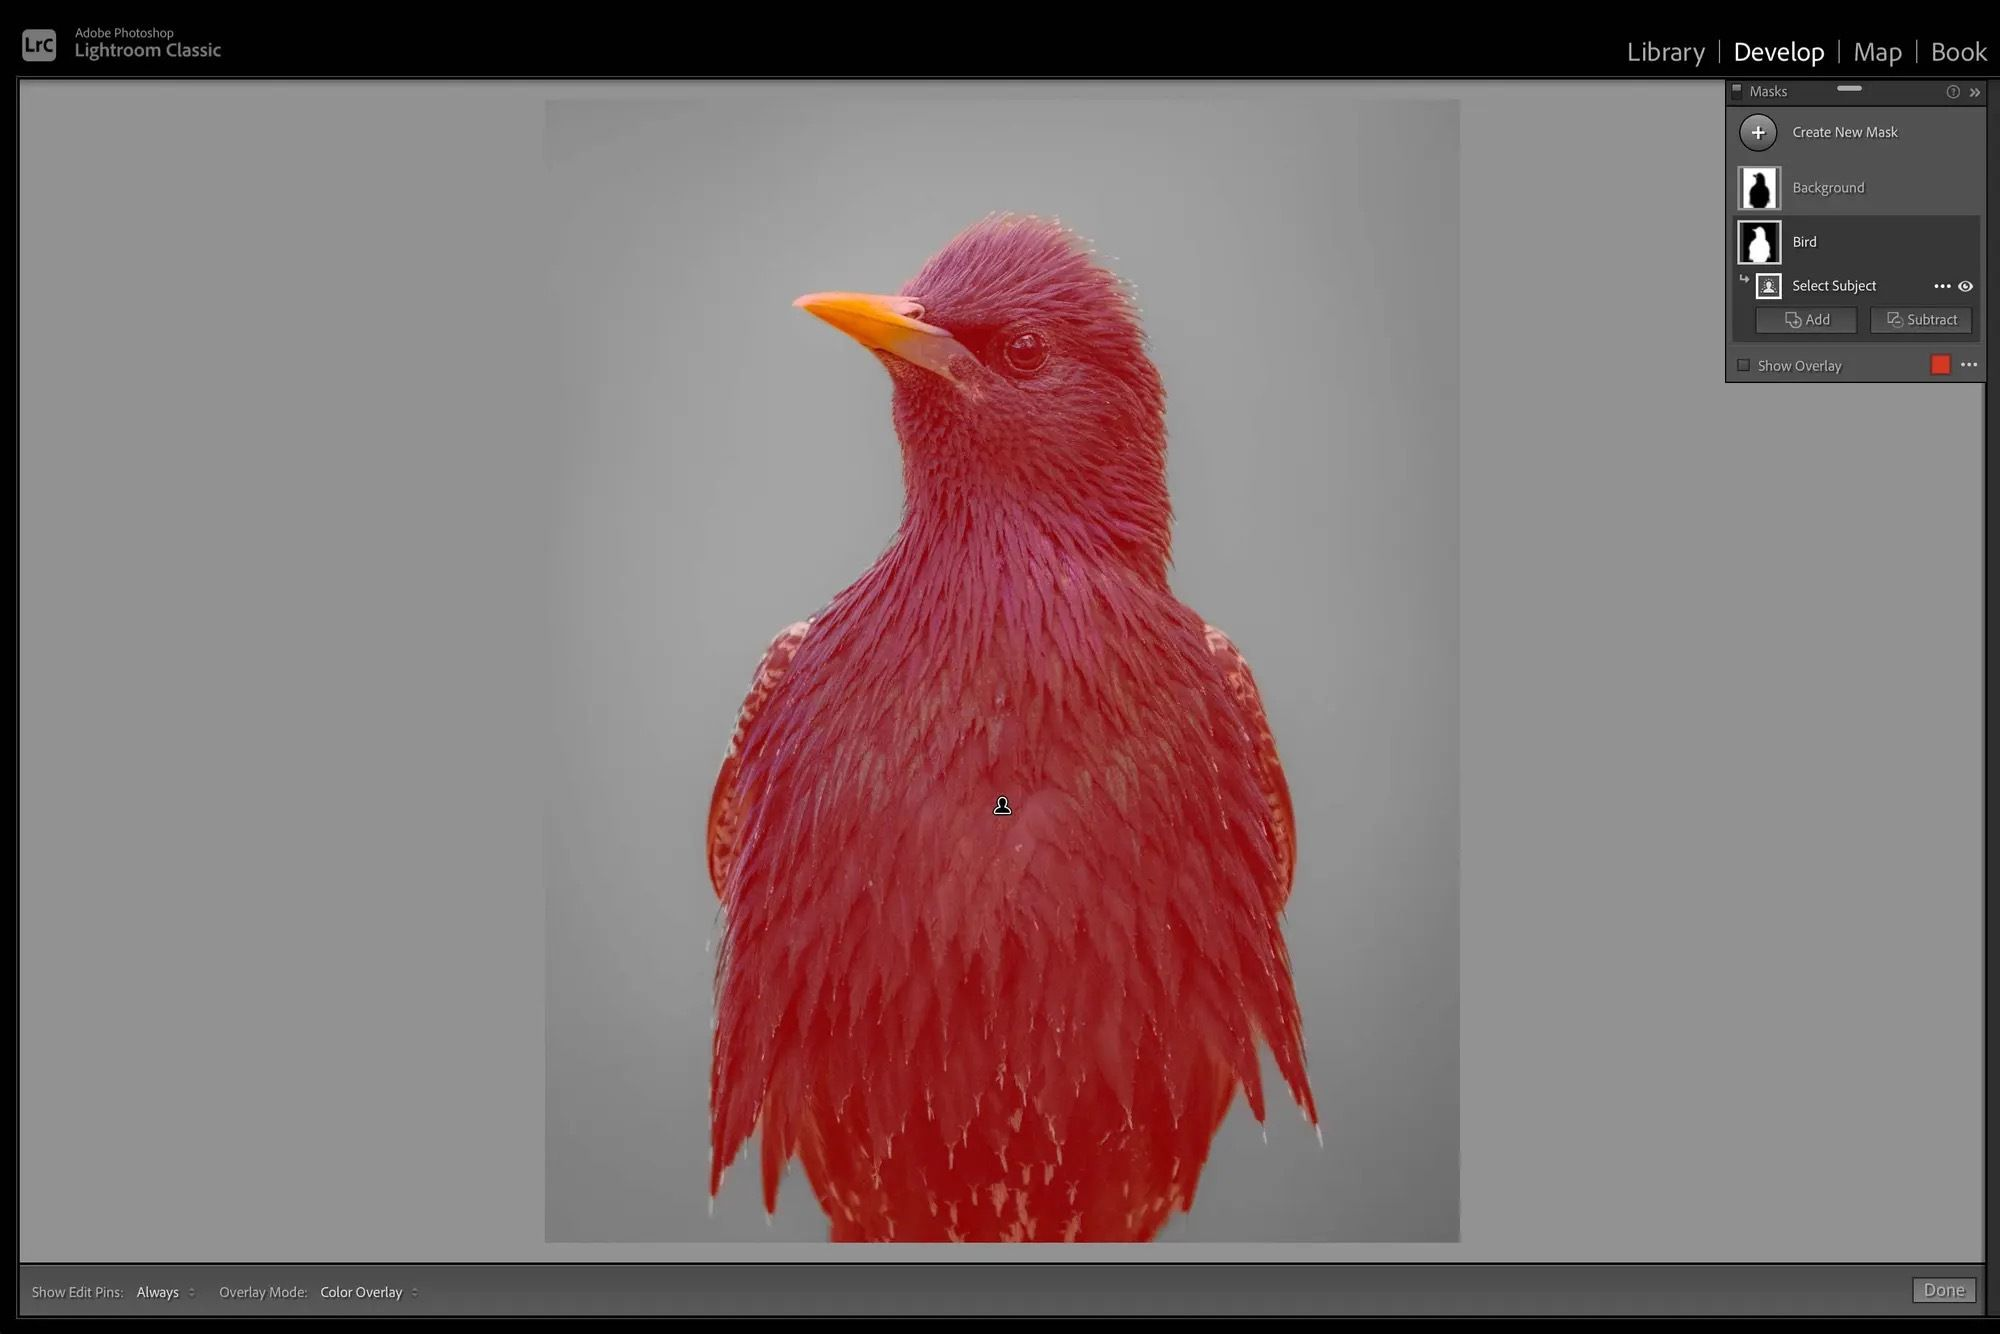 Using Lightroom to add a red overlay on top on an image of a bird